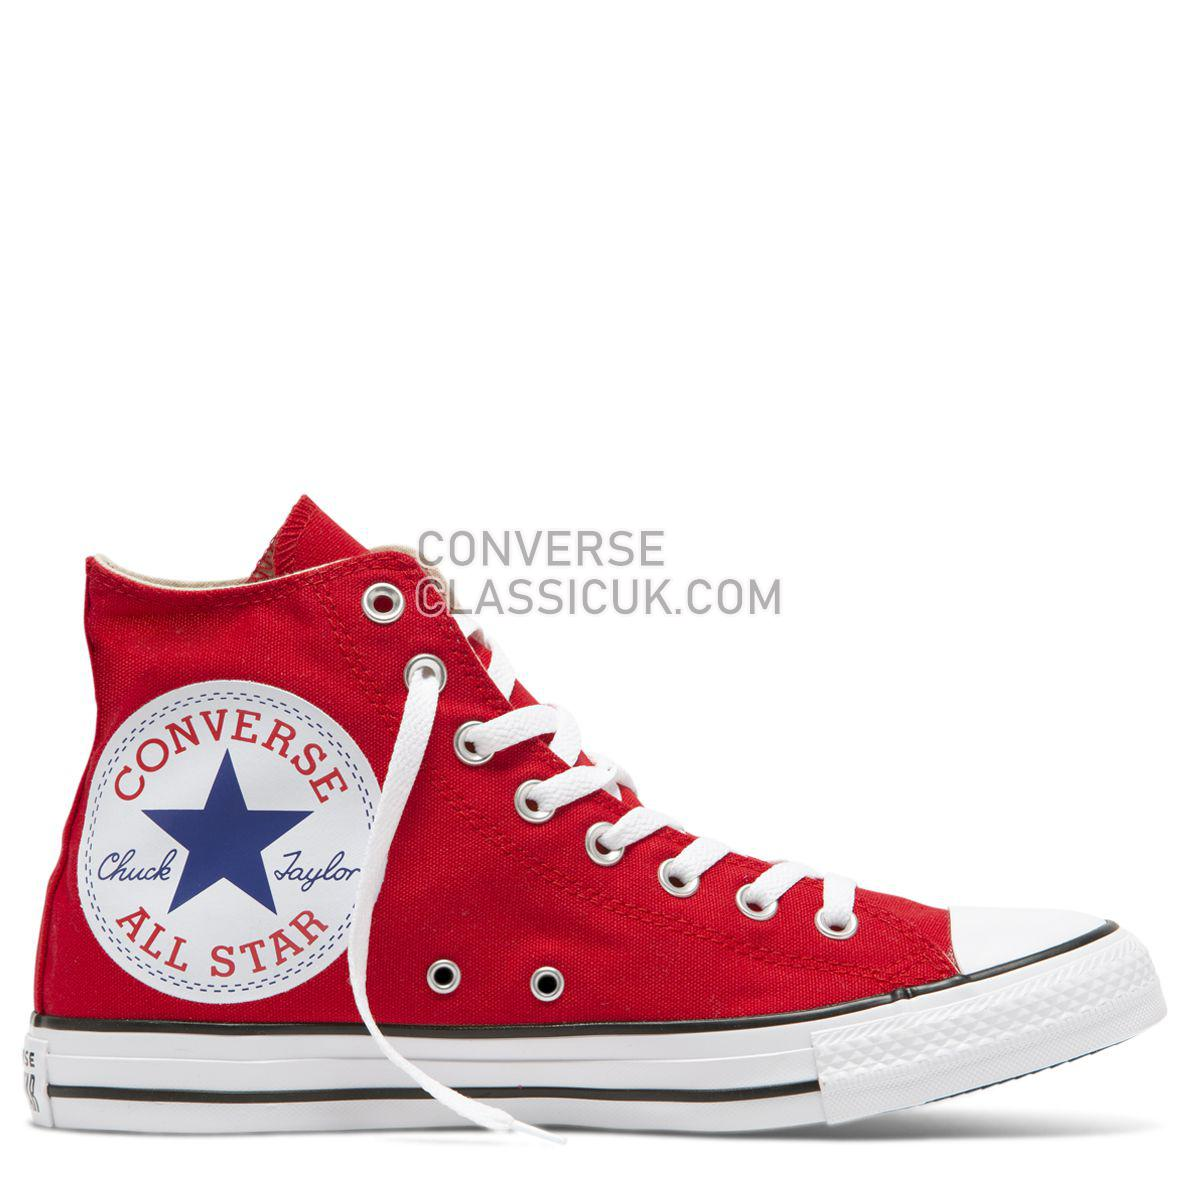 Converse Chuck Taylor All Star Oversized Logo High Top Red Mens Womens Unisex 165695 Red/White/Black Shoes